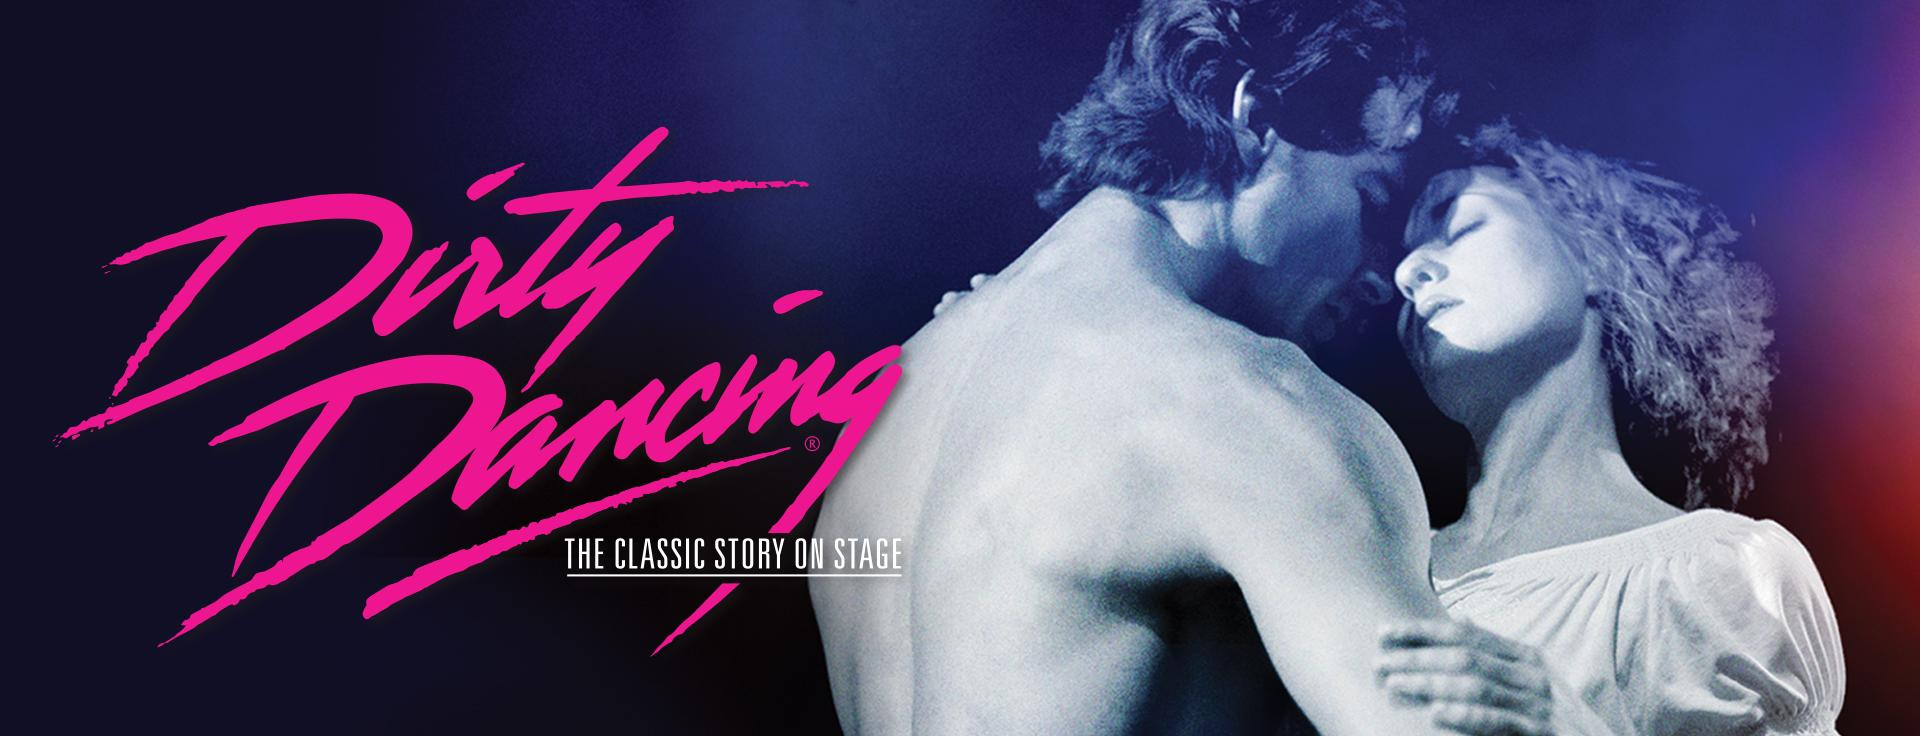 Image of actors from Dirty Dancing